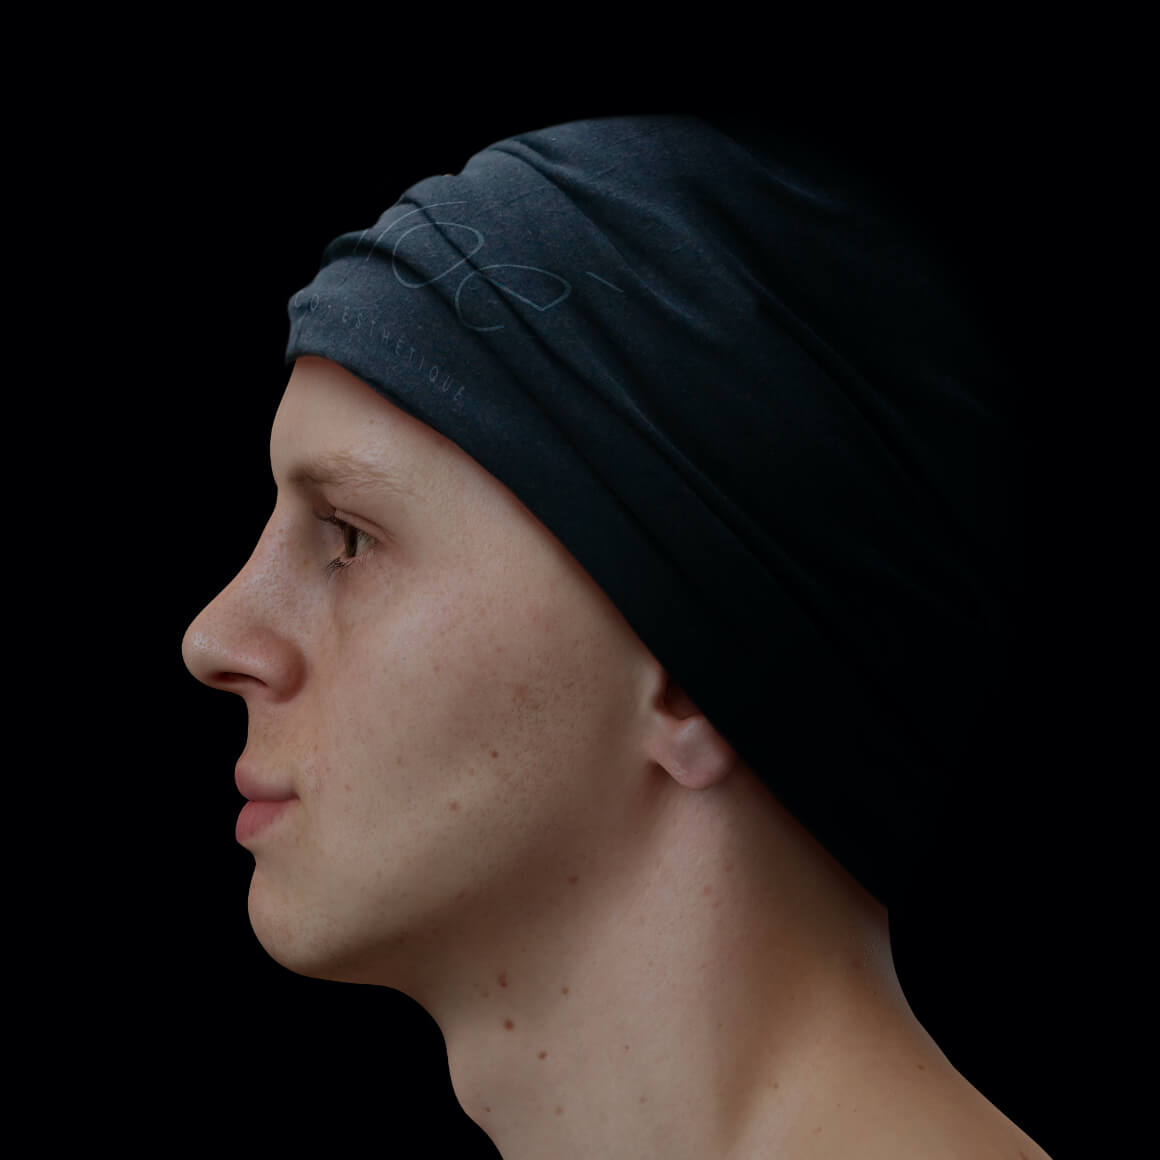 Male patient at Clinique Chloé positioned sideways after Radiesse injections for jawline definition